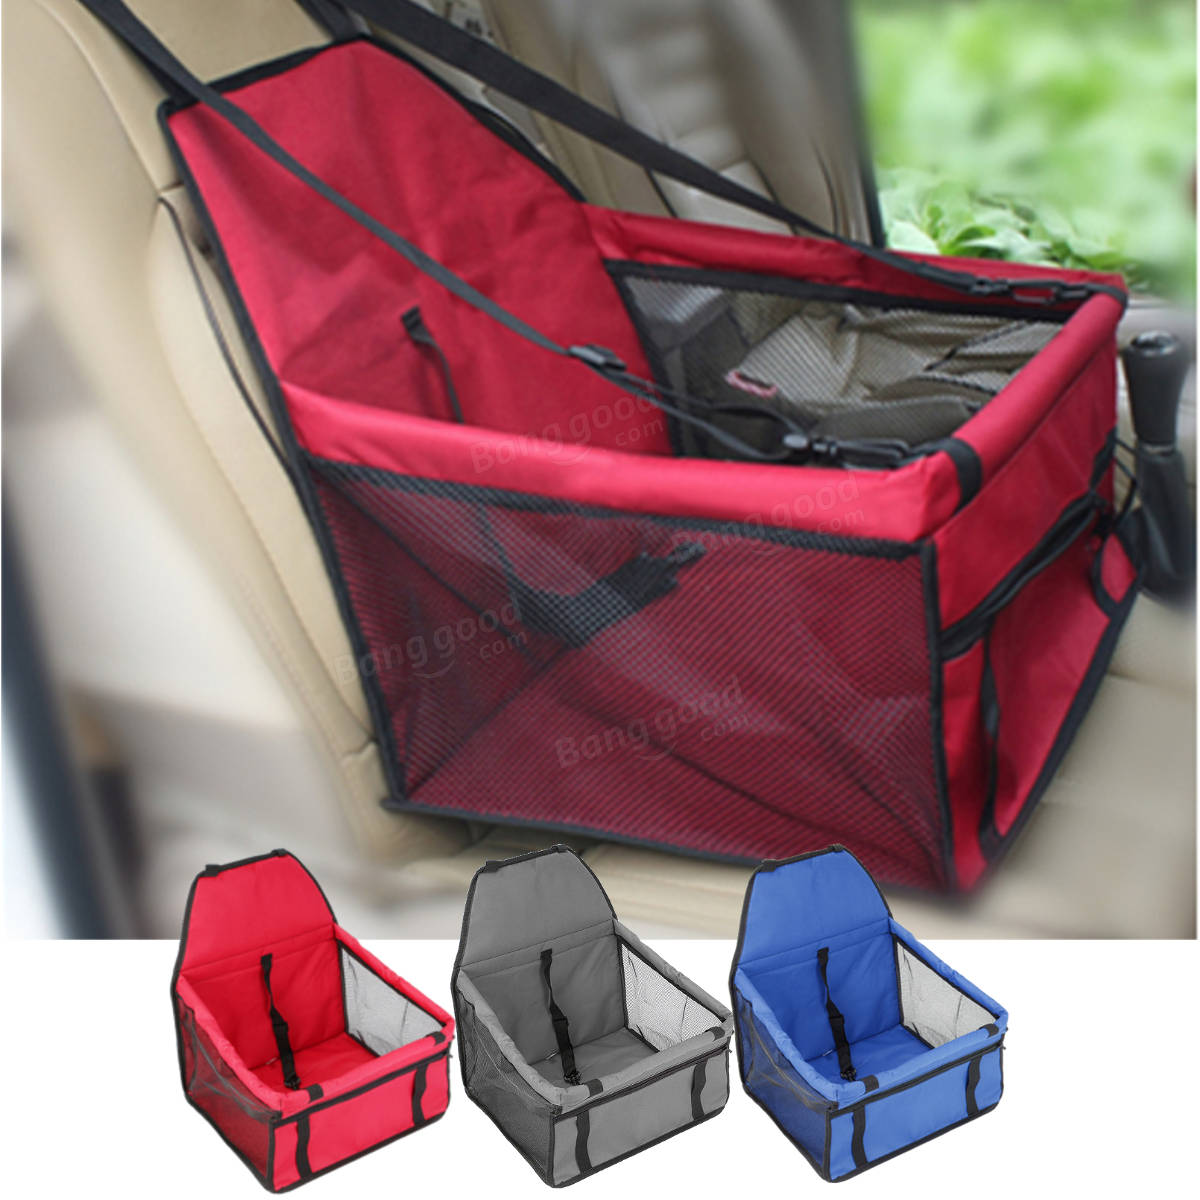 Car Seat Carrier For Cats and Dogs Pets Lookout Carrier Zipper Storage Pocket Portable Carrier Bag